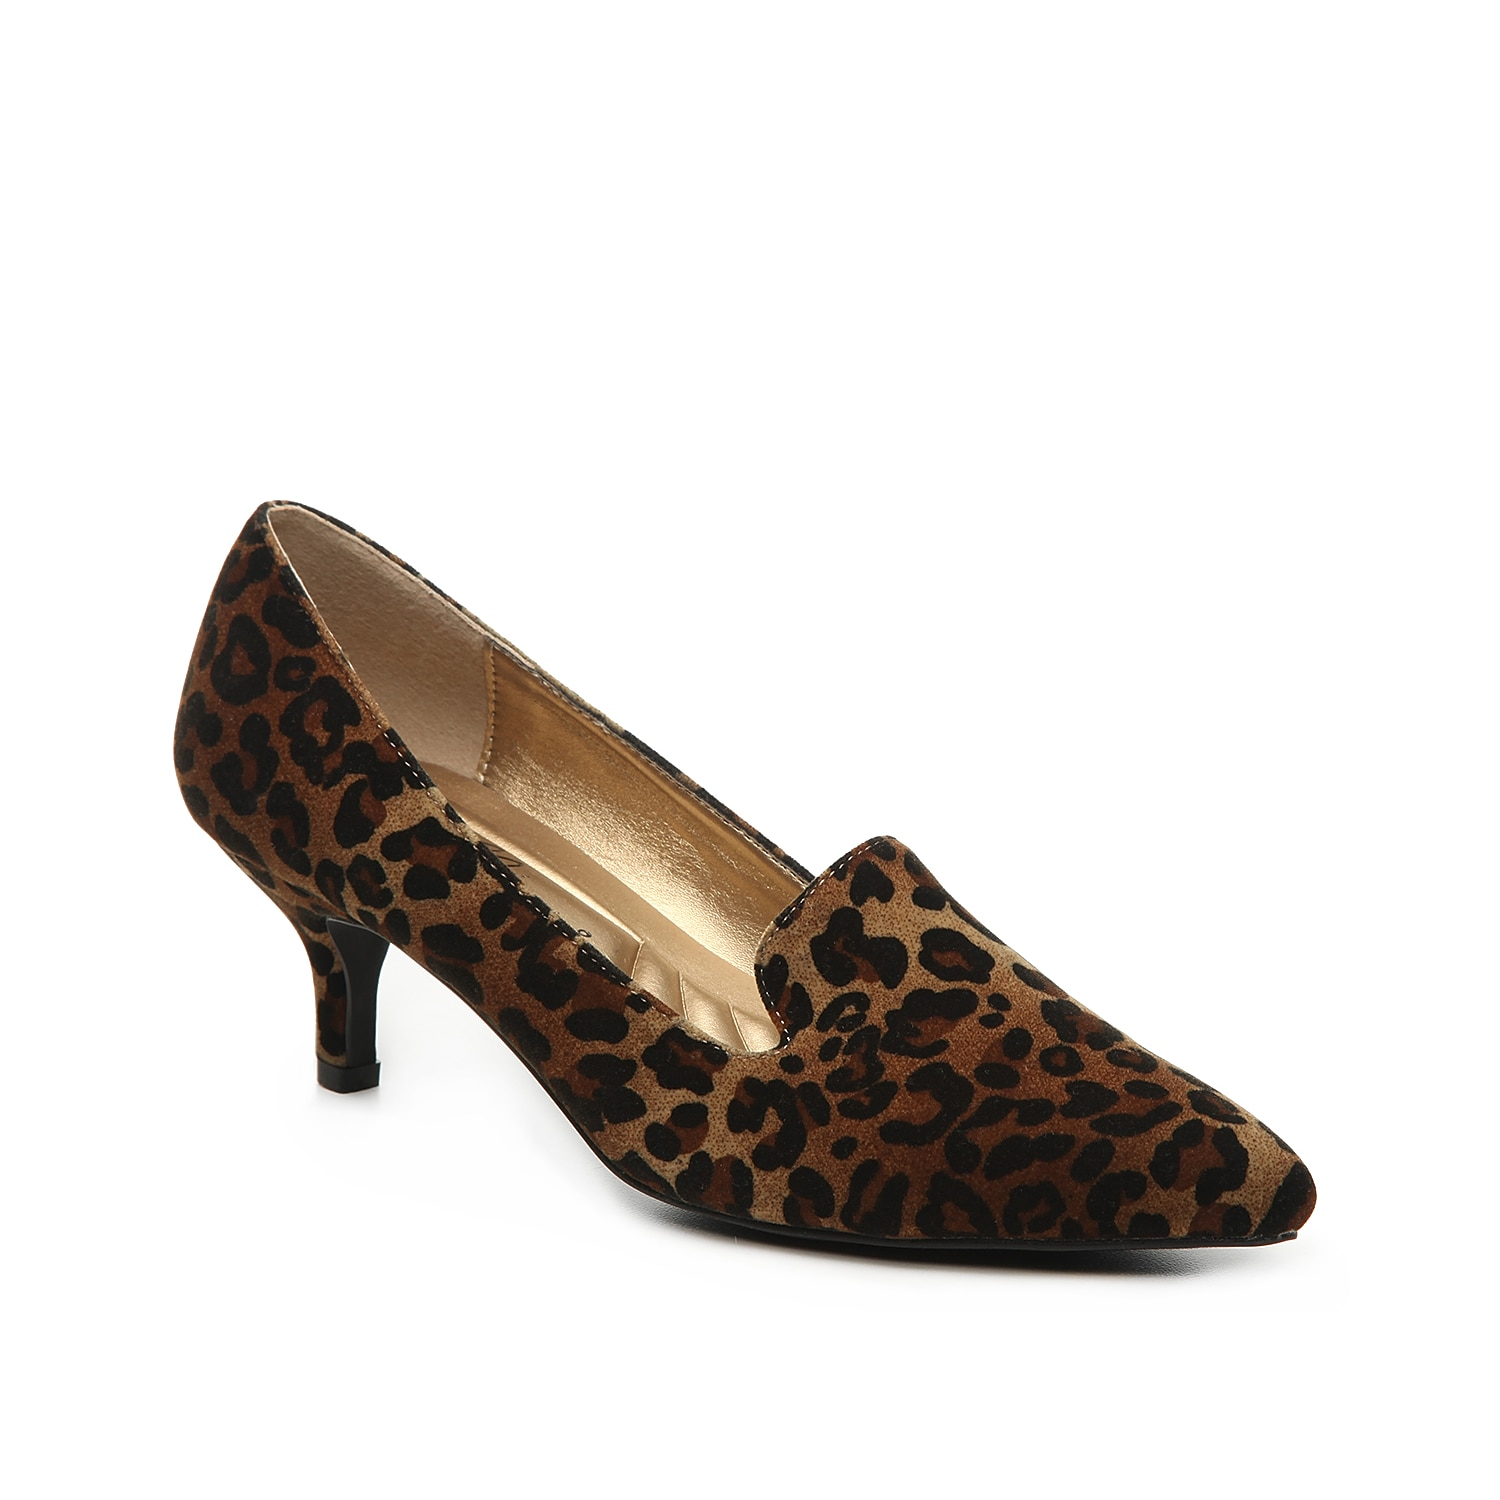 The Bobcat pump from Bellini adds a sassy side to work or weekend ensembles. These velvet slip-ons feature a loafer-inspired vamp and are finished with a kitten heel for classic appeal.